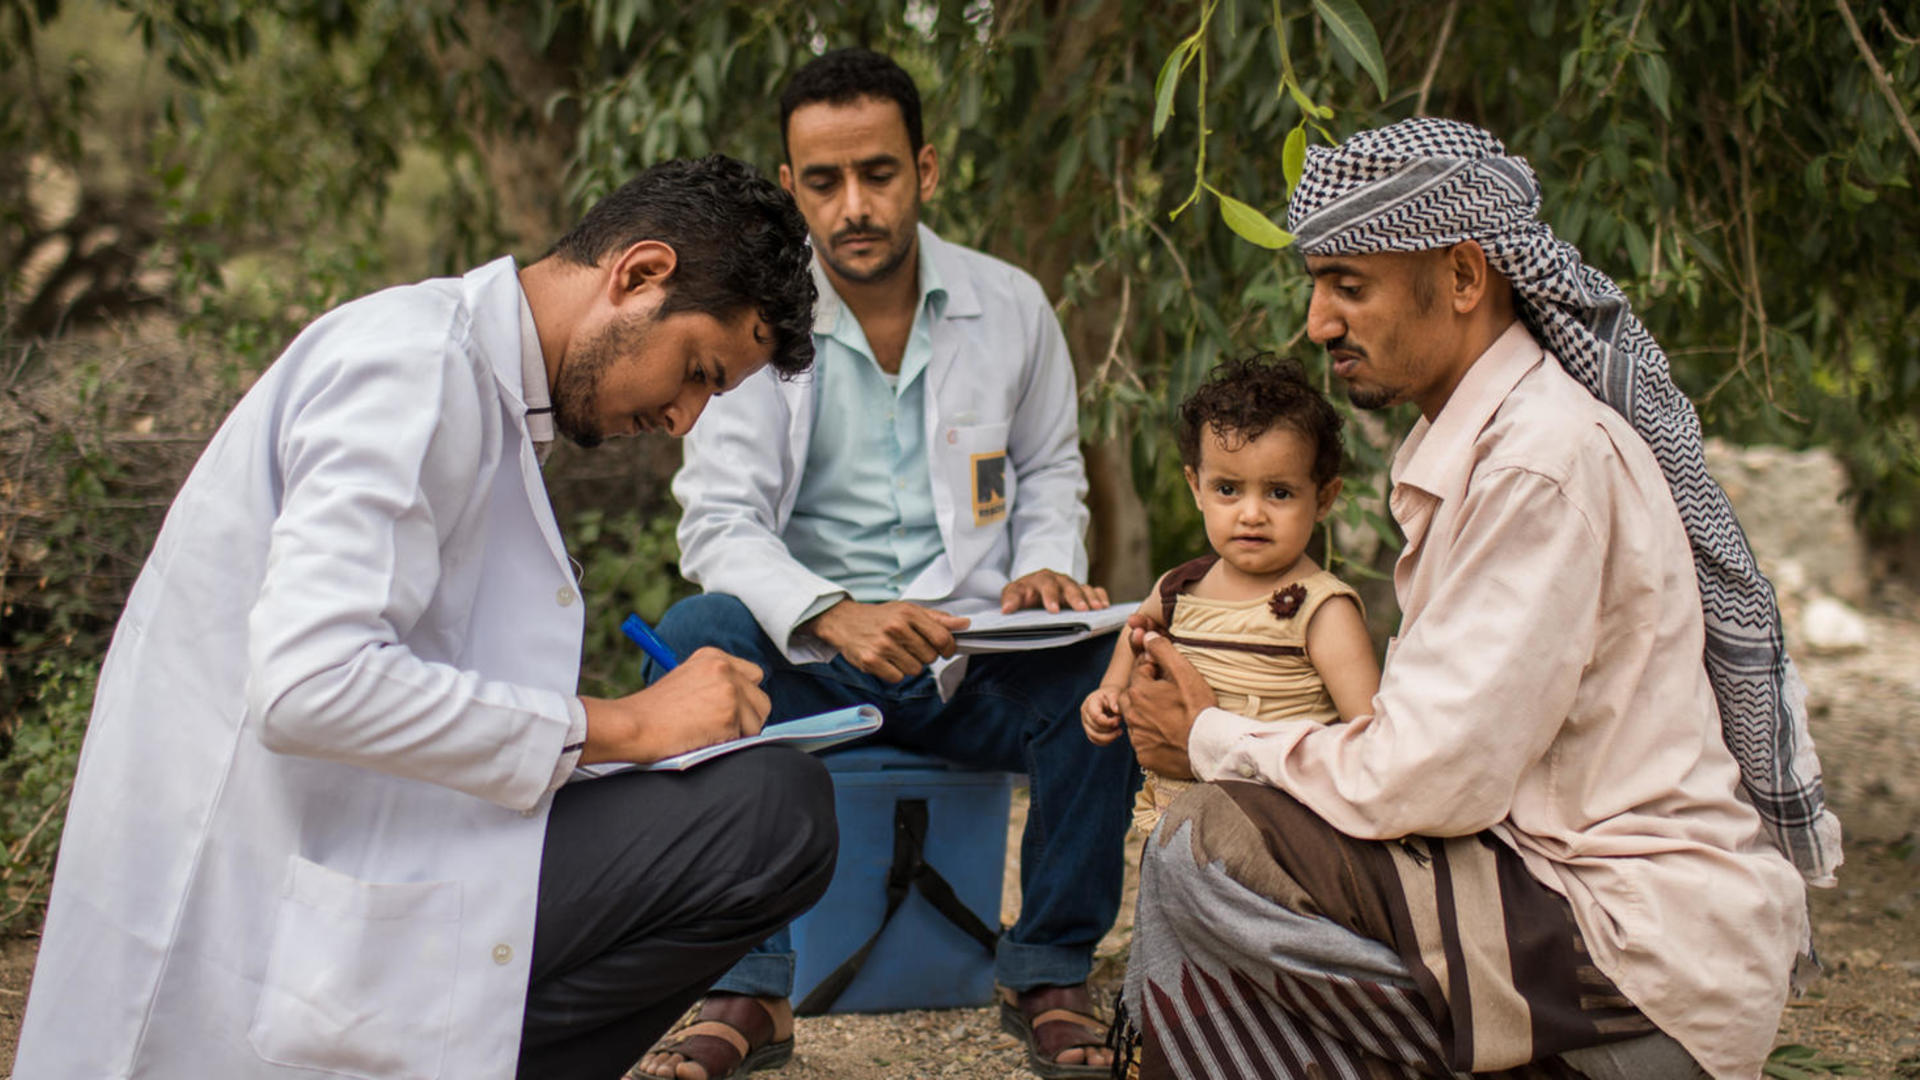 A health workers writes notes as he examines a child sitting on his father's lap